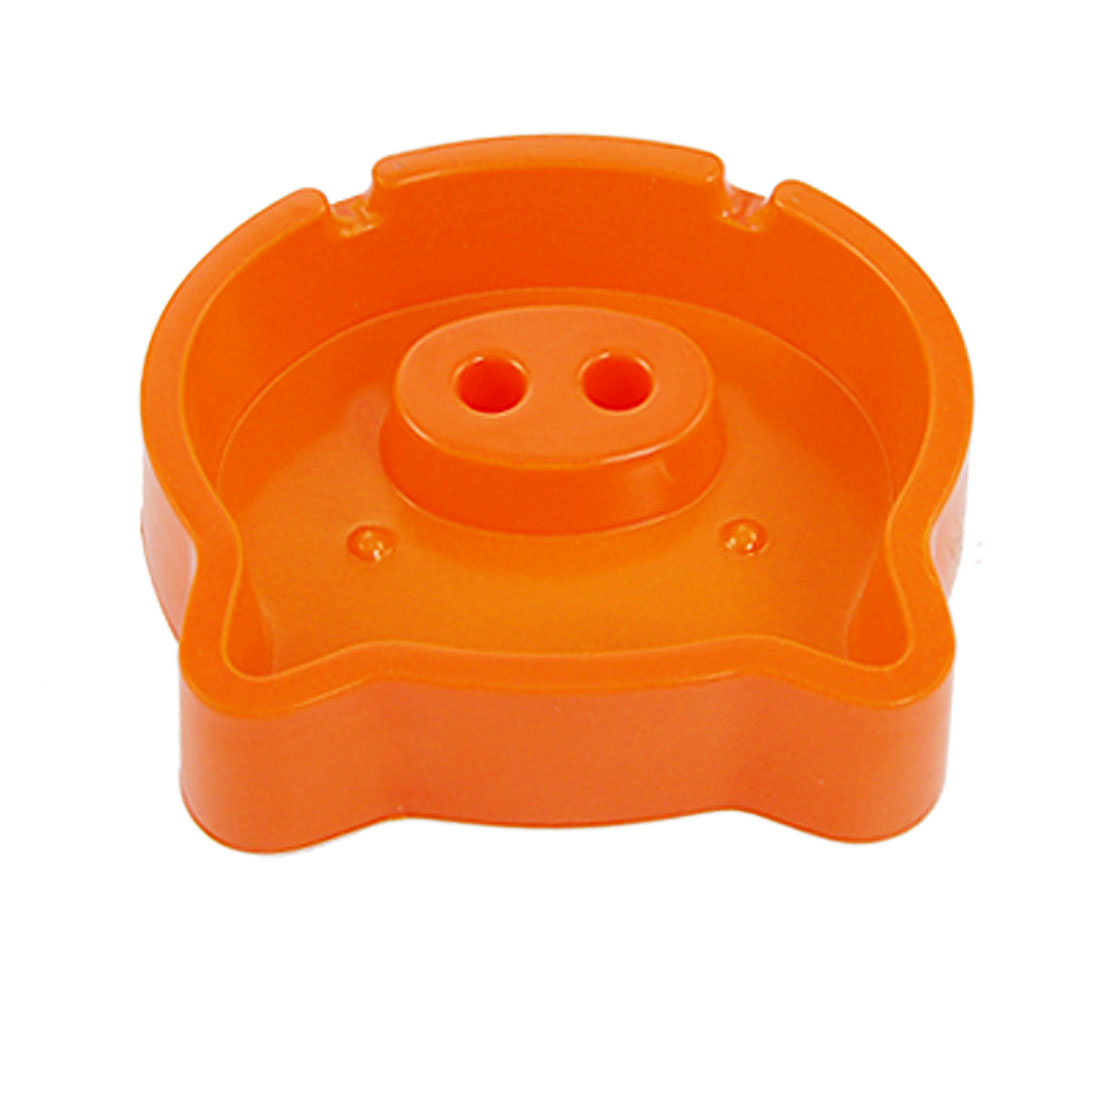 Home Office Decor Orange Plastic Cigar Cigarette Pig Style Ashtray